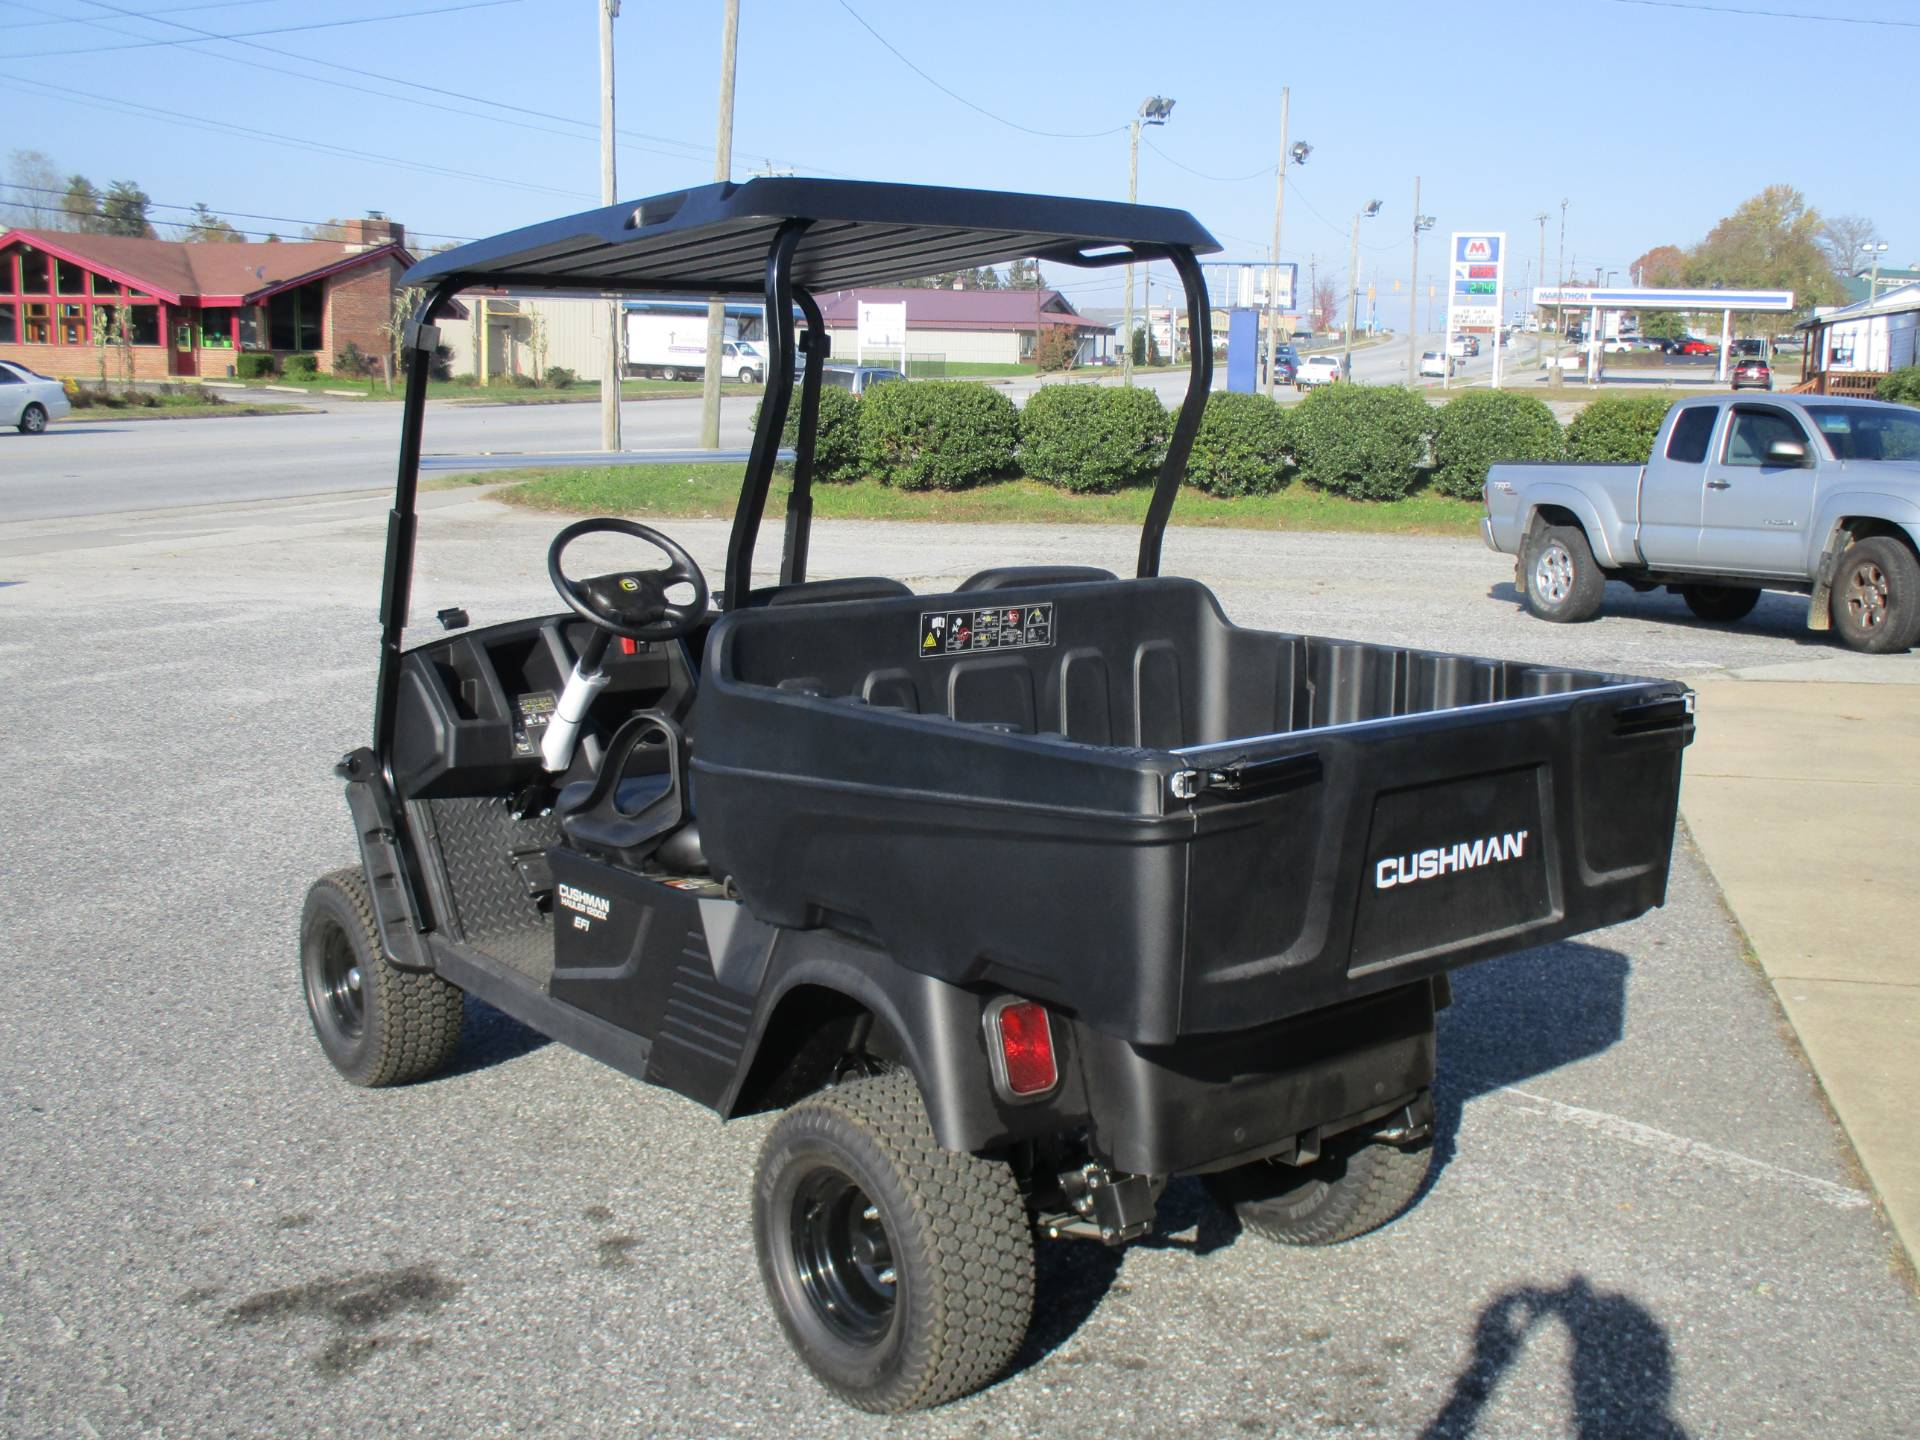 2020 Cushman Hauler 1200X Gas in Hendersonville, North Carolina - Photo 5